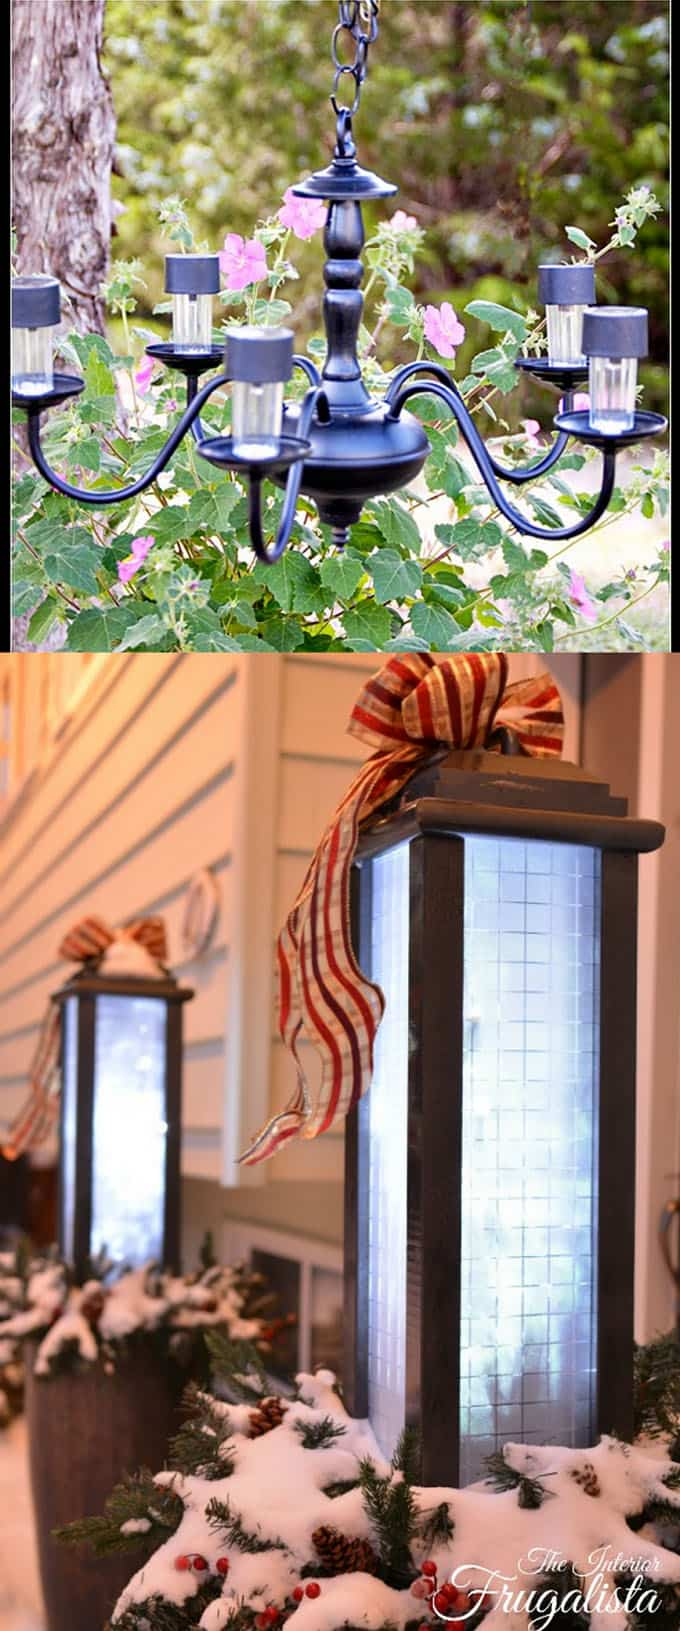 DIY-outdoor-lights-apieceofrainbowblog (9)